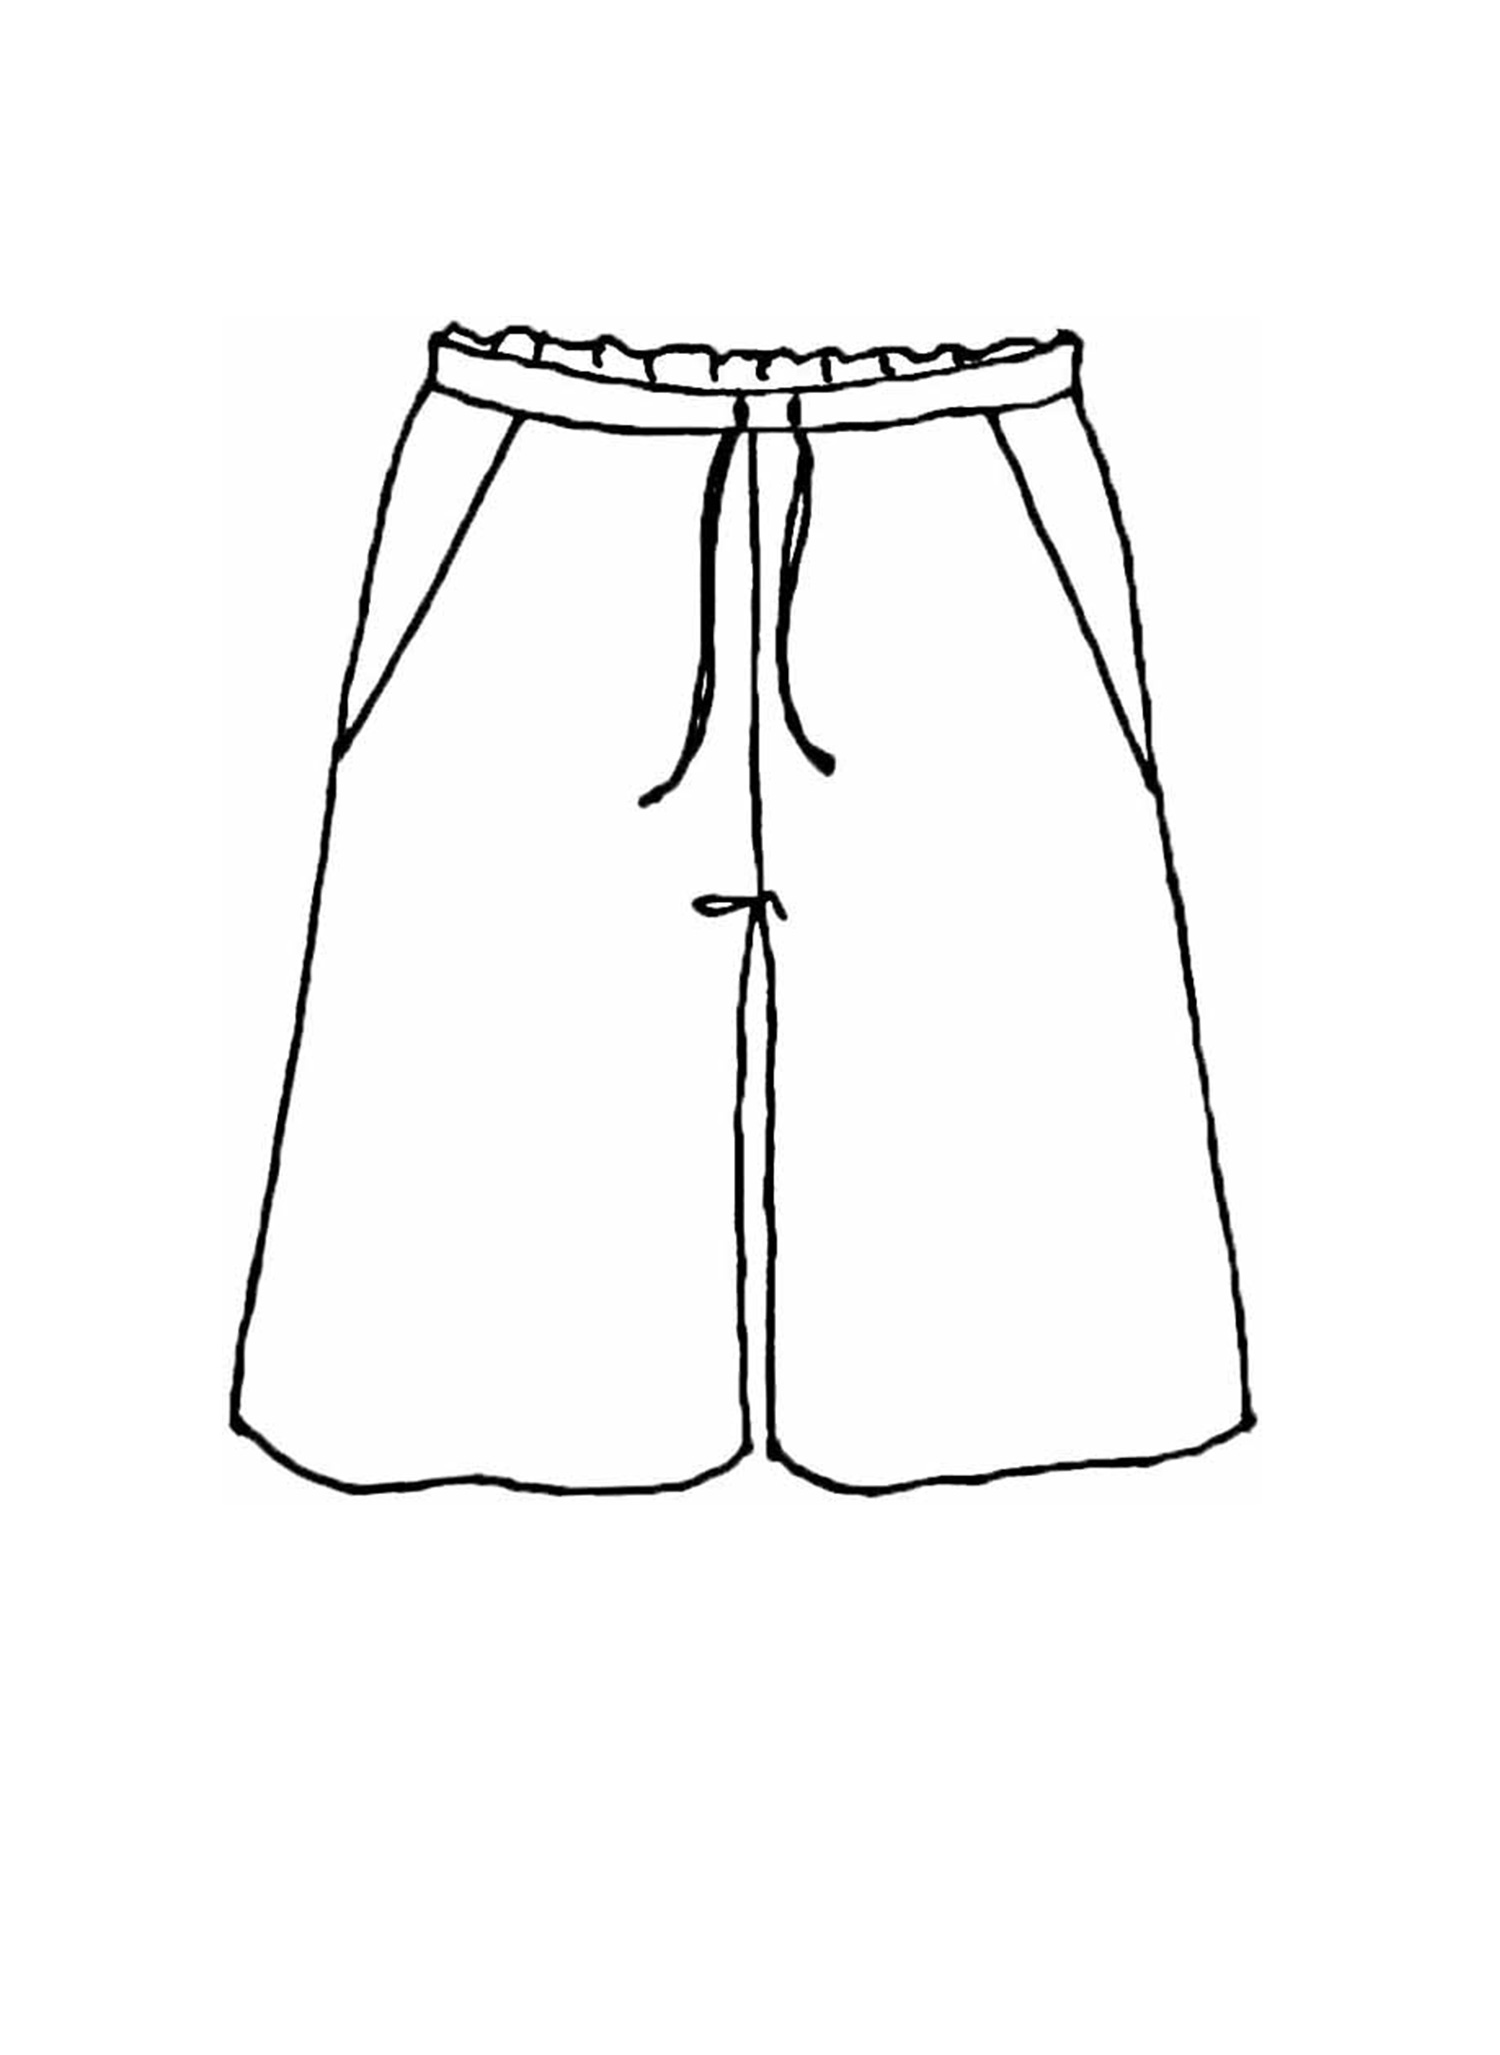 Day Shorts sketch image